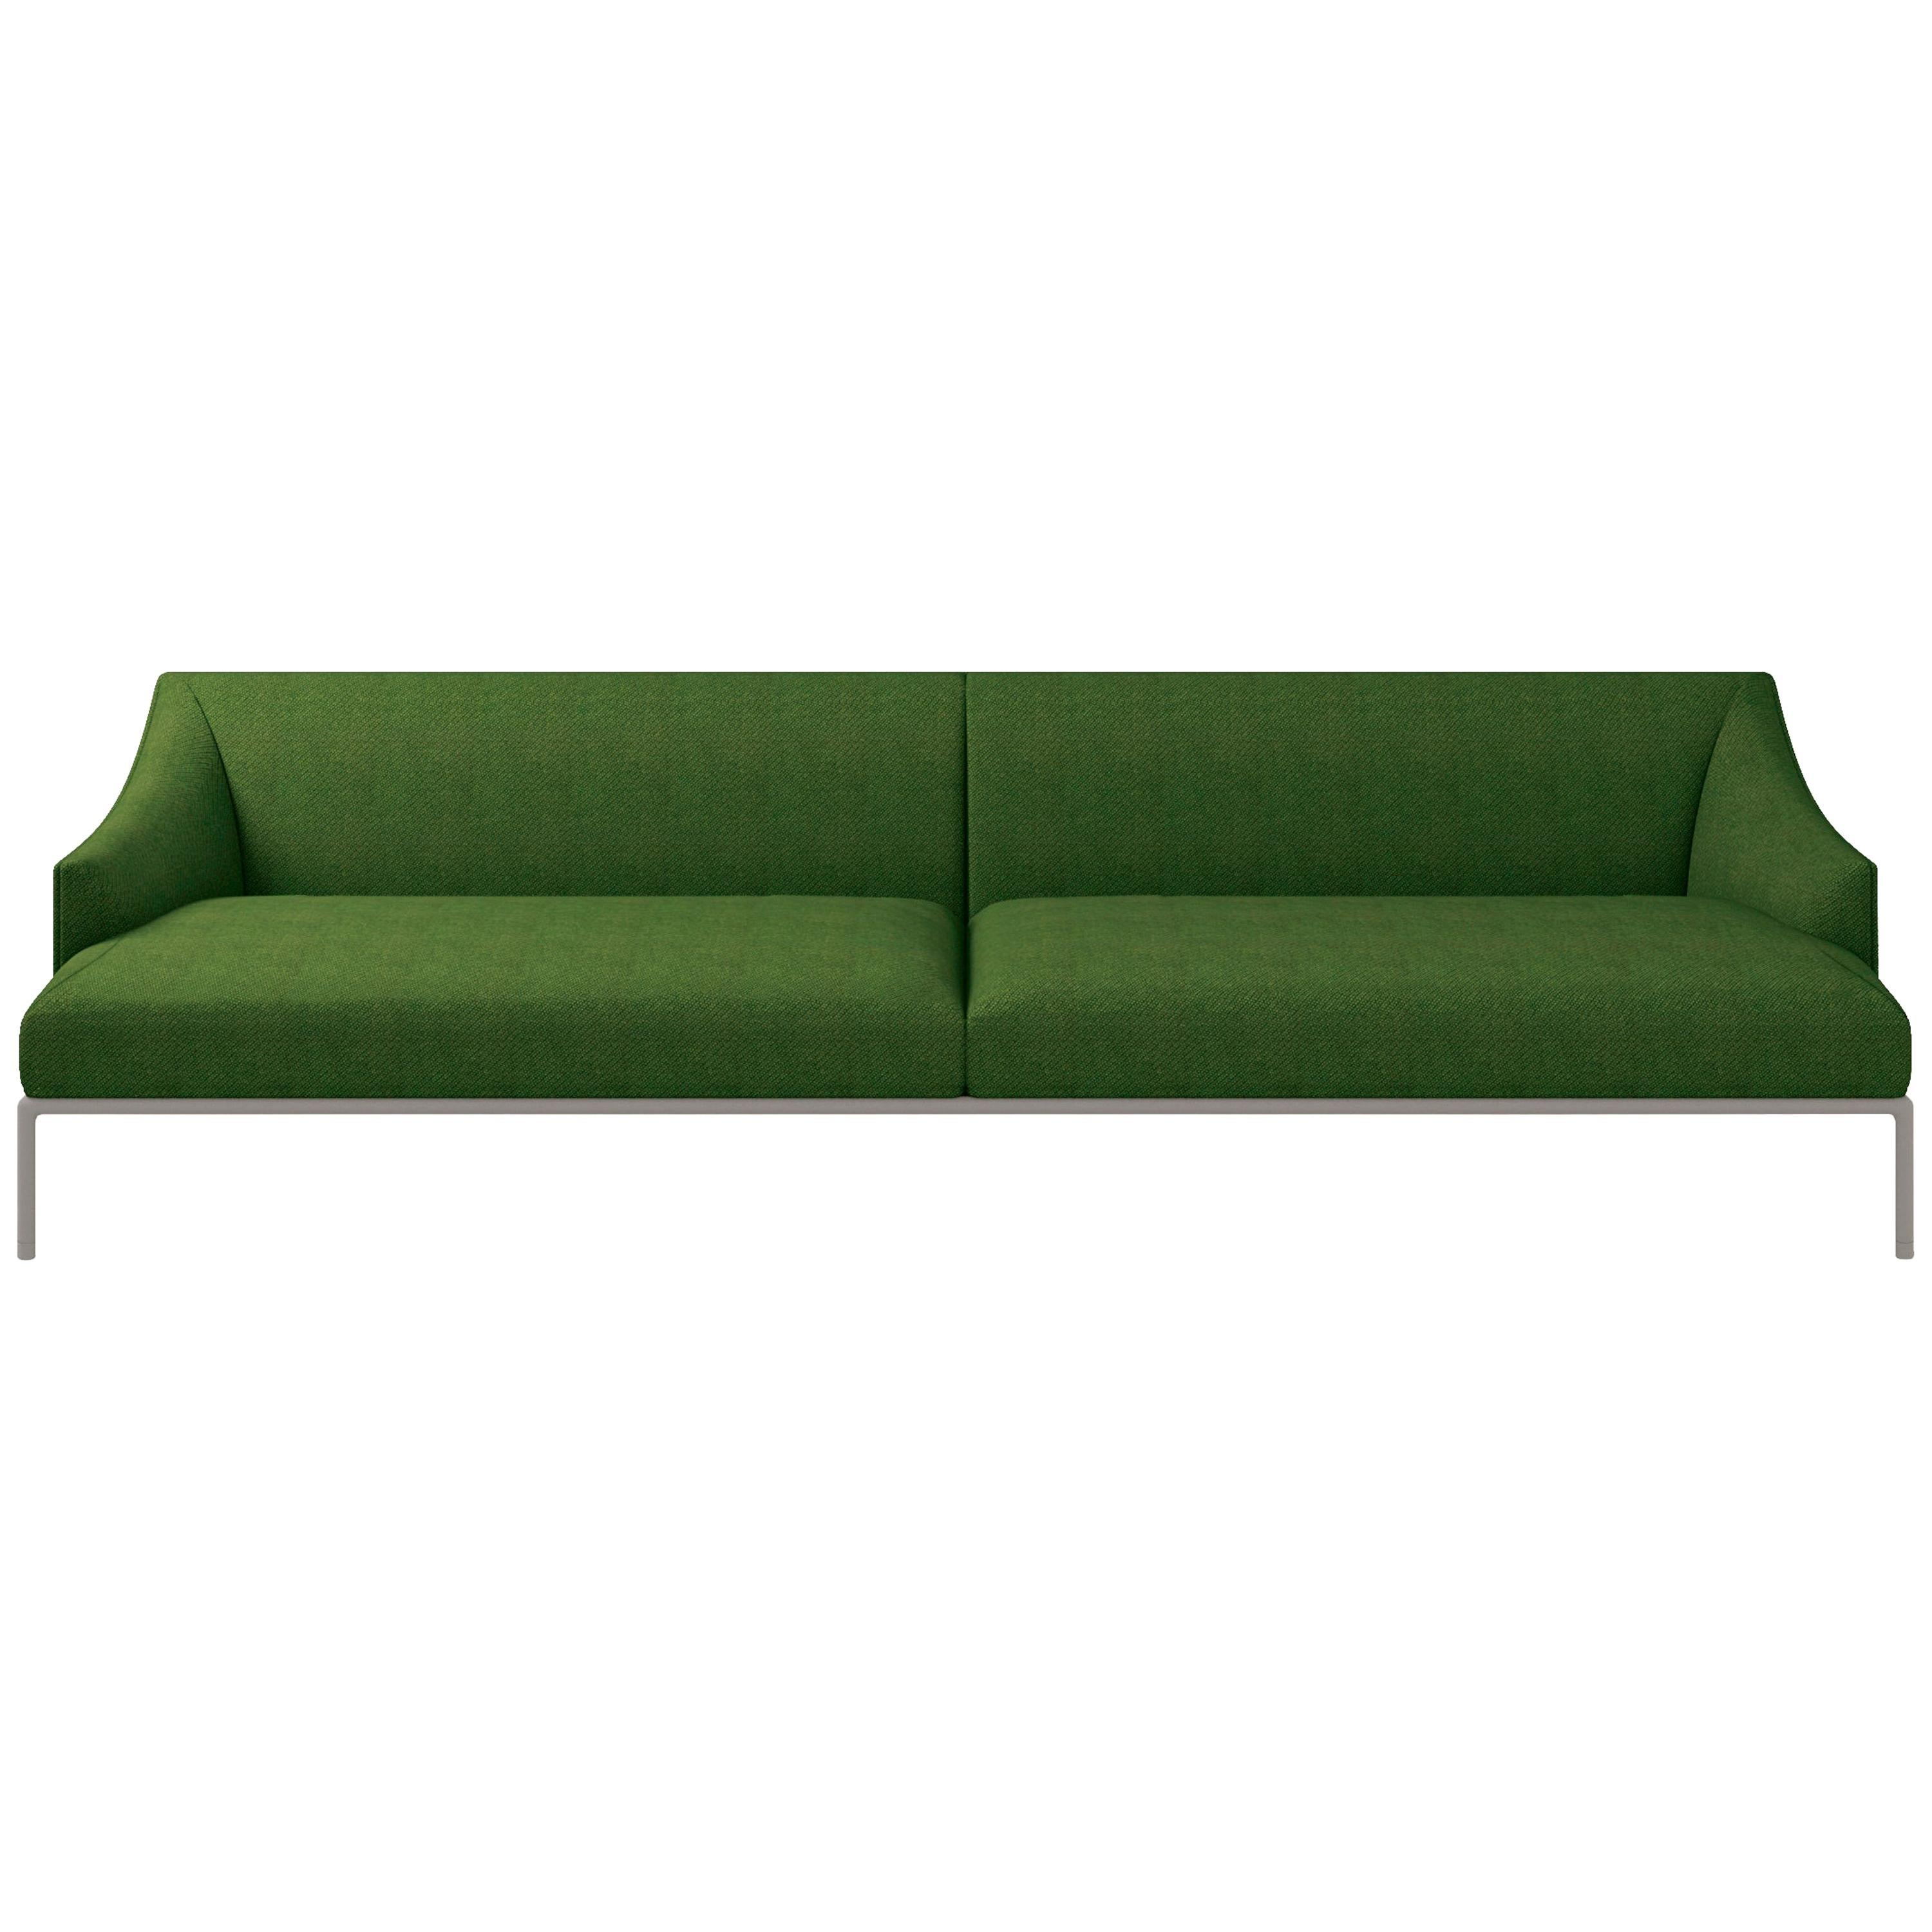 High Time Three-Seat Sofa in Green Hallingdal Fabric by Christophe Pillet